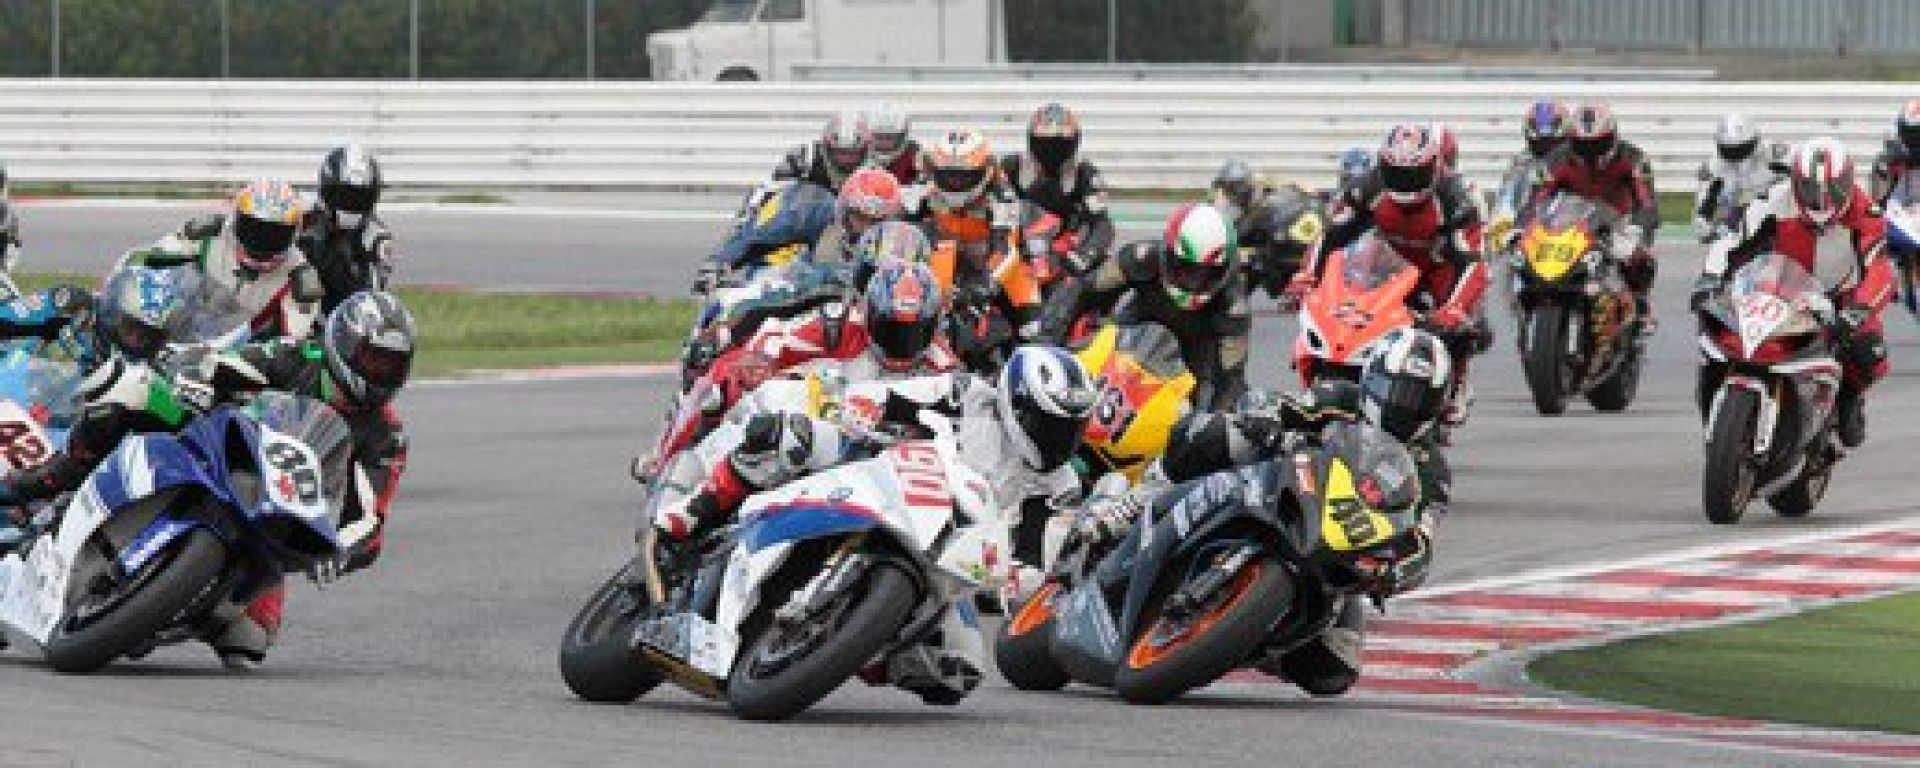 Dunlop Cup: Il trofeo